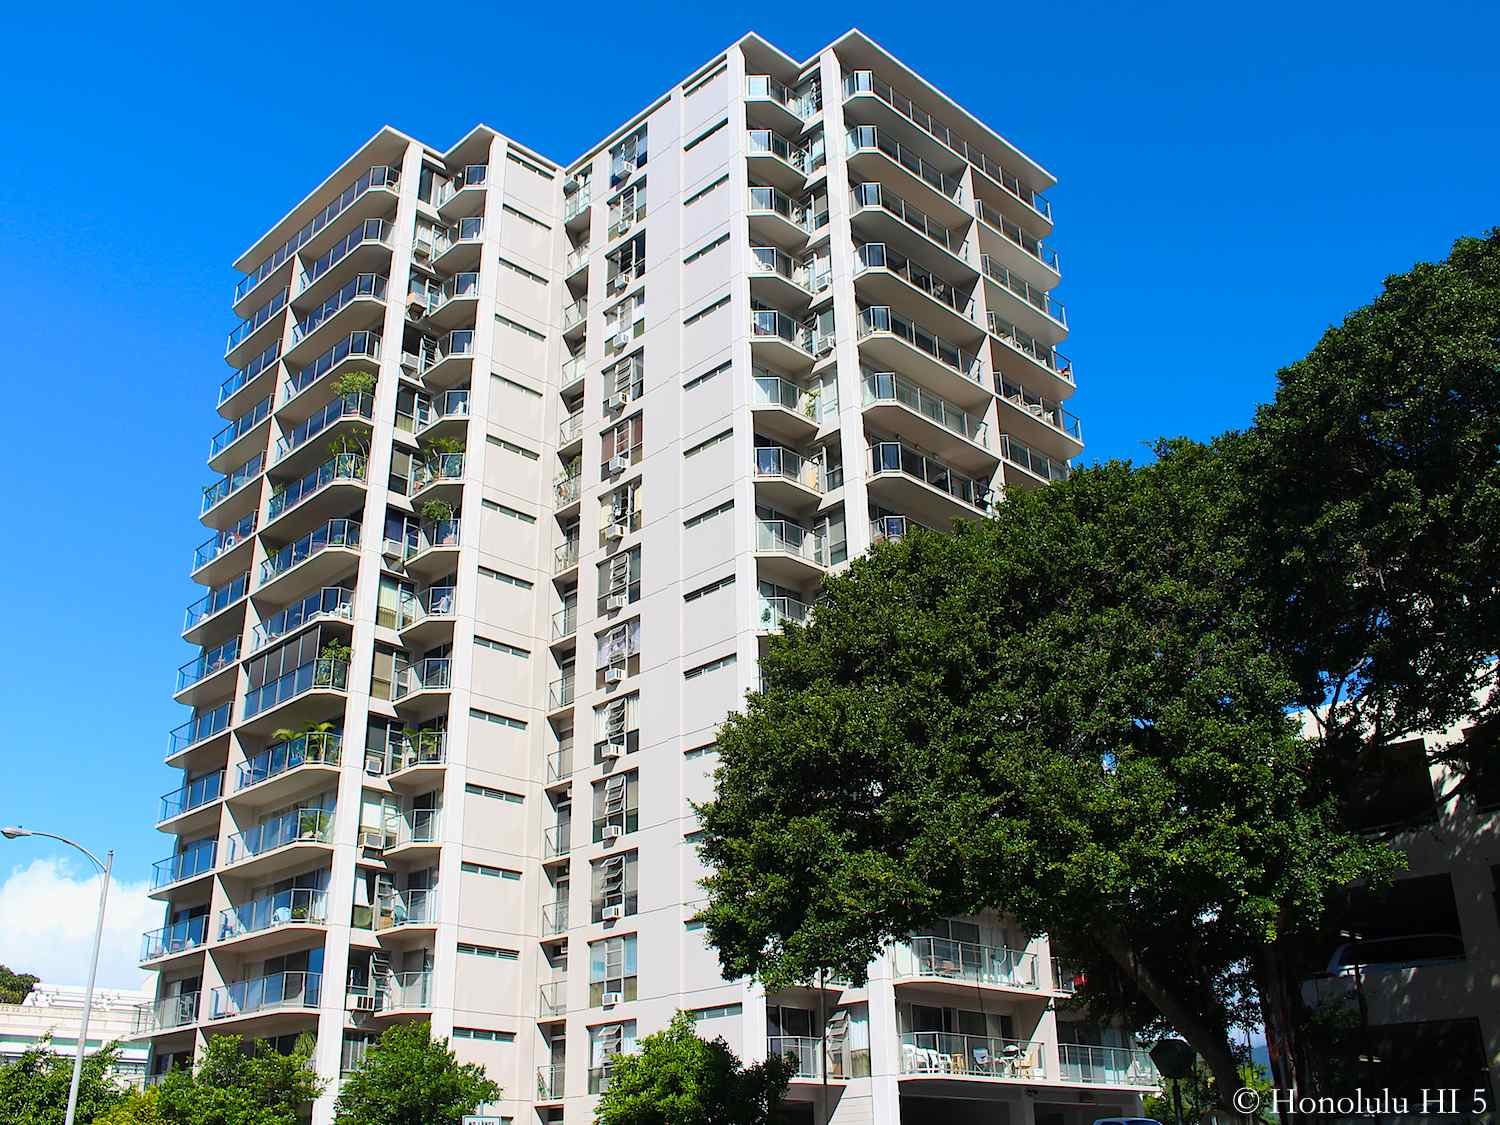 Marina Towers Condos in Waikiki - Older White Highrise With Each Unit Having a Lanai